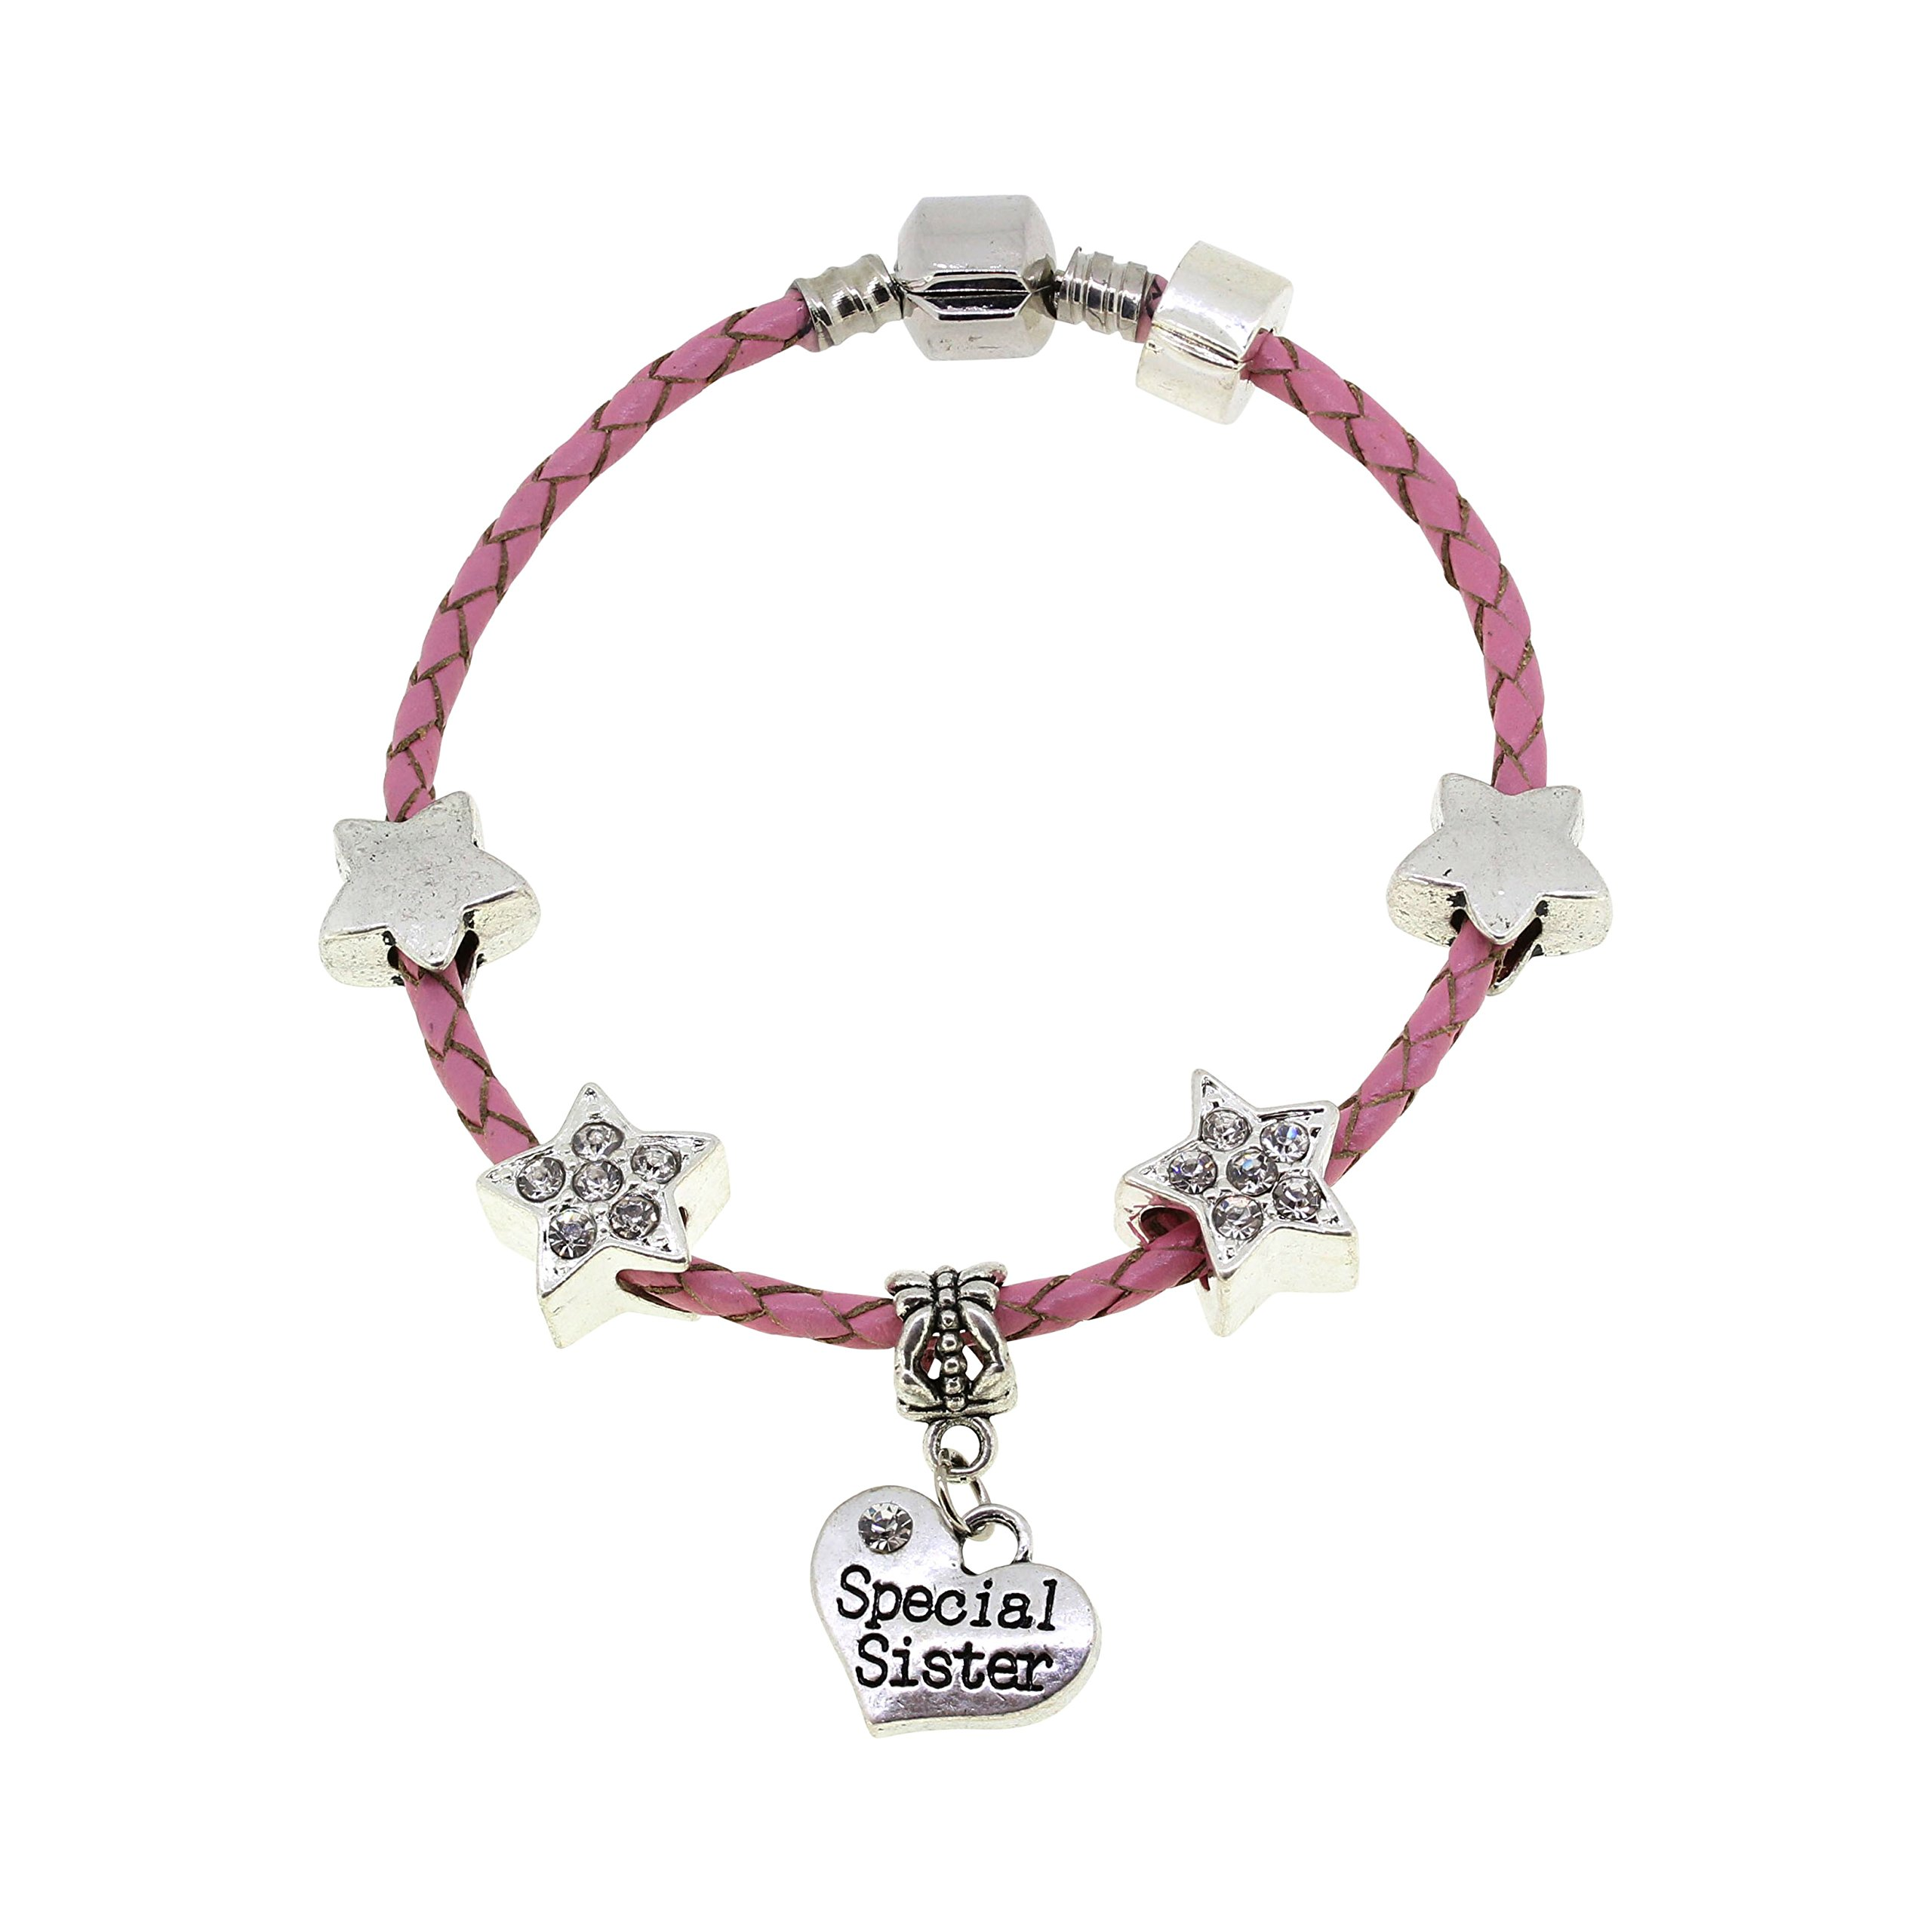 Big Sister You're a Star Pink Leather Charm Bracelet Gift Boxed 19cm